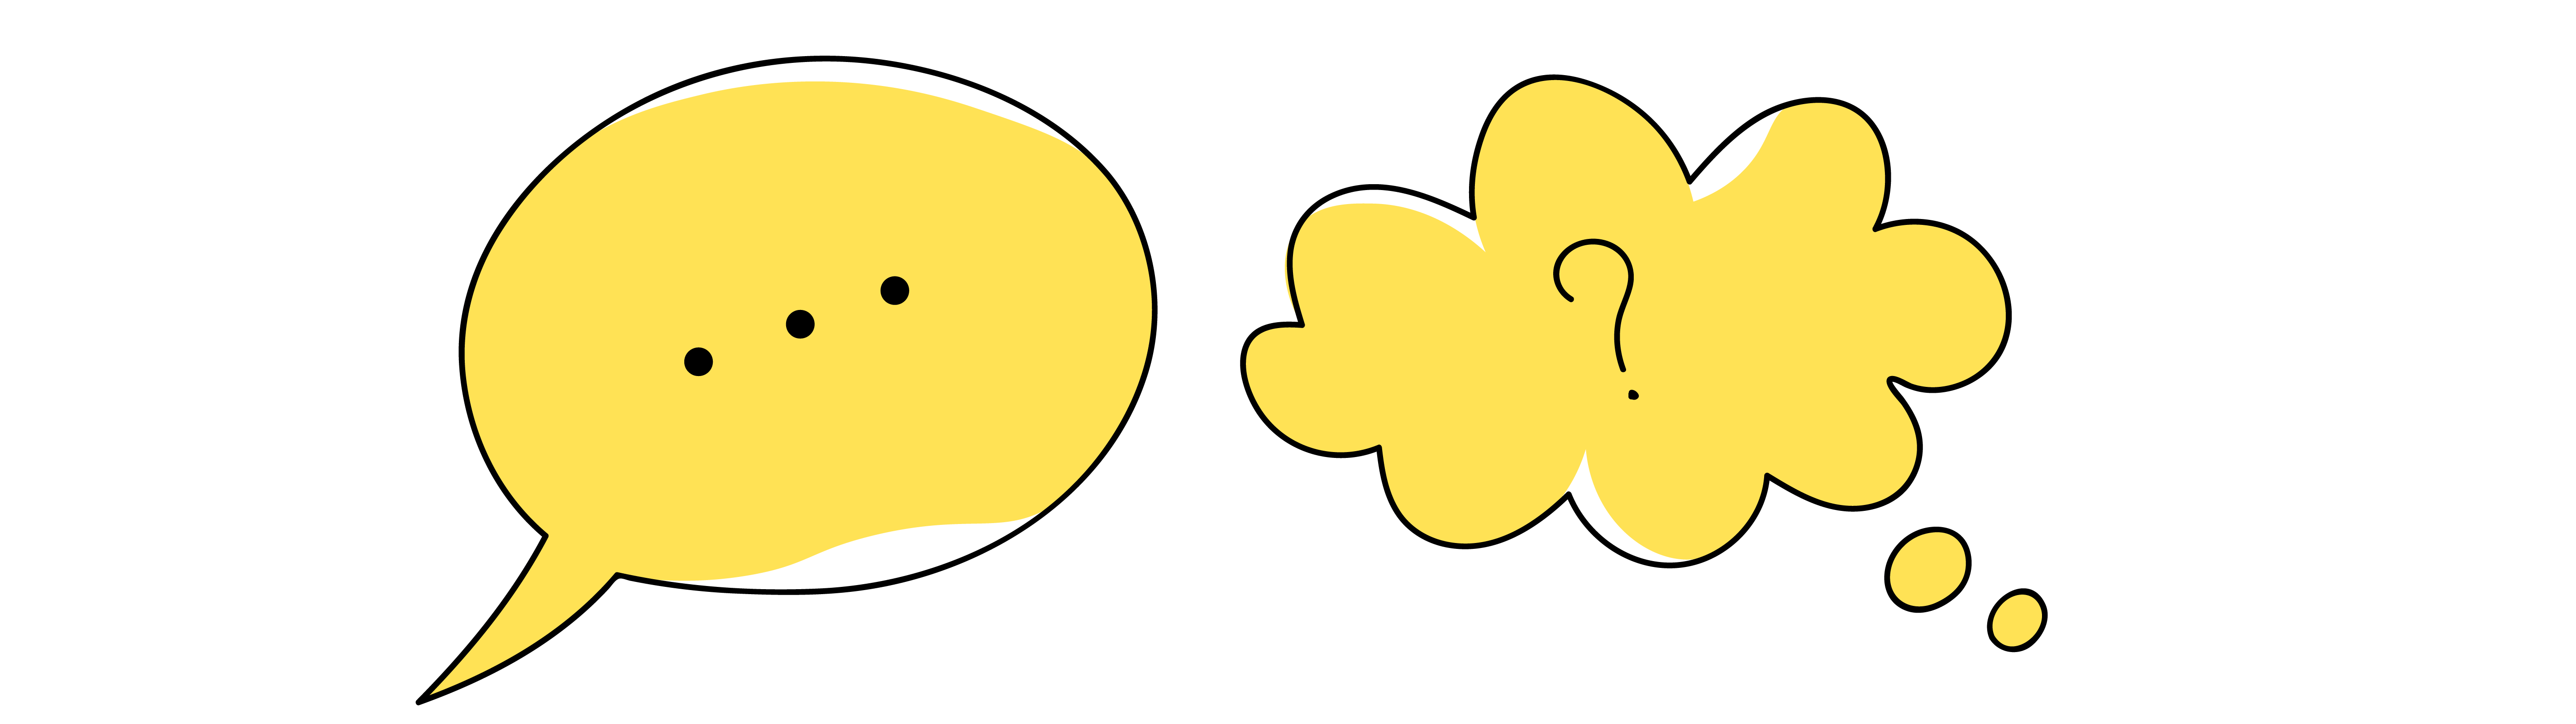 An outline illustration of 2 yellow speech bubbles.